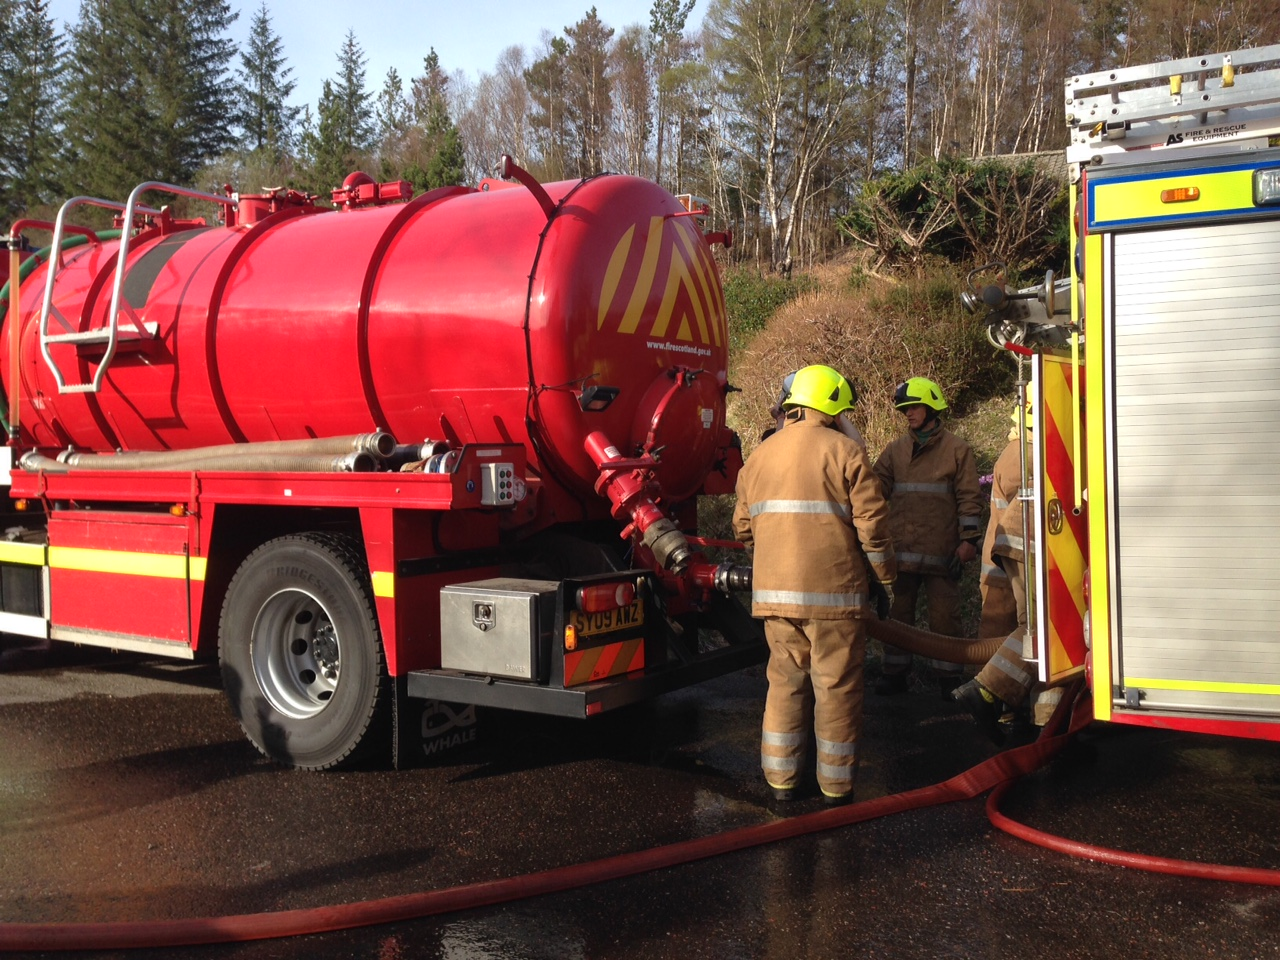 SFRS dealing with large shed fire at Gairlochy Holiday Park, Spean Bridge